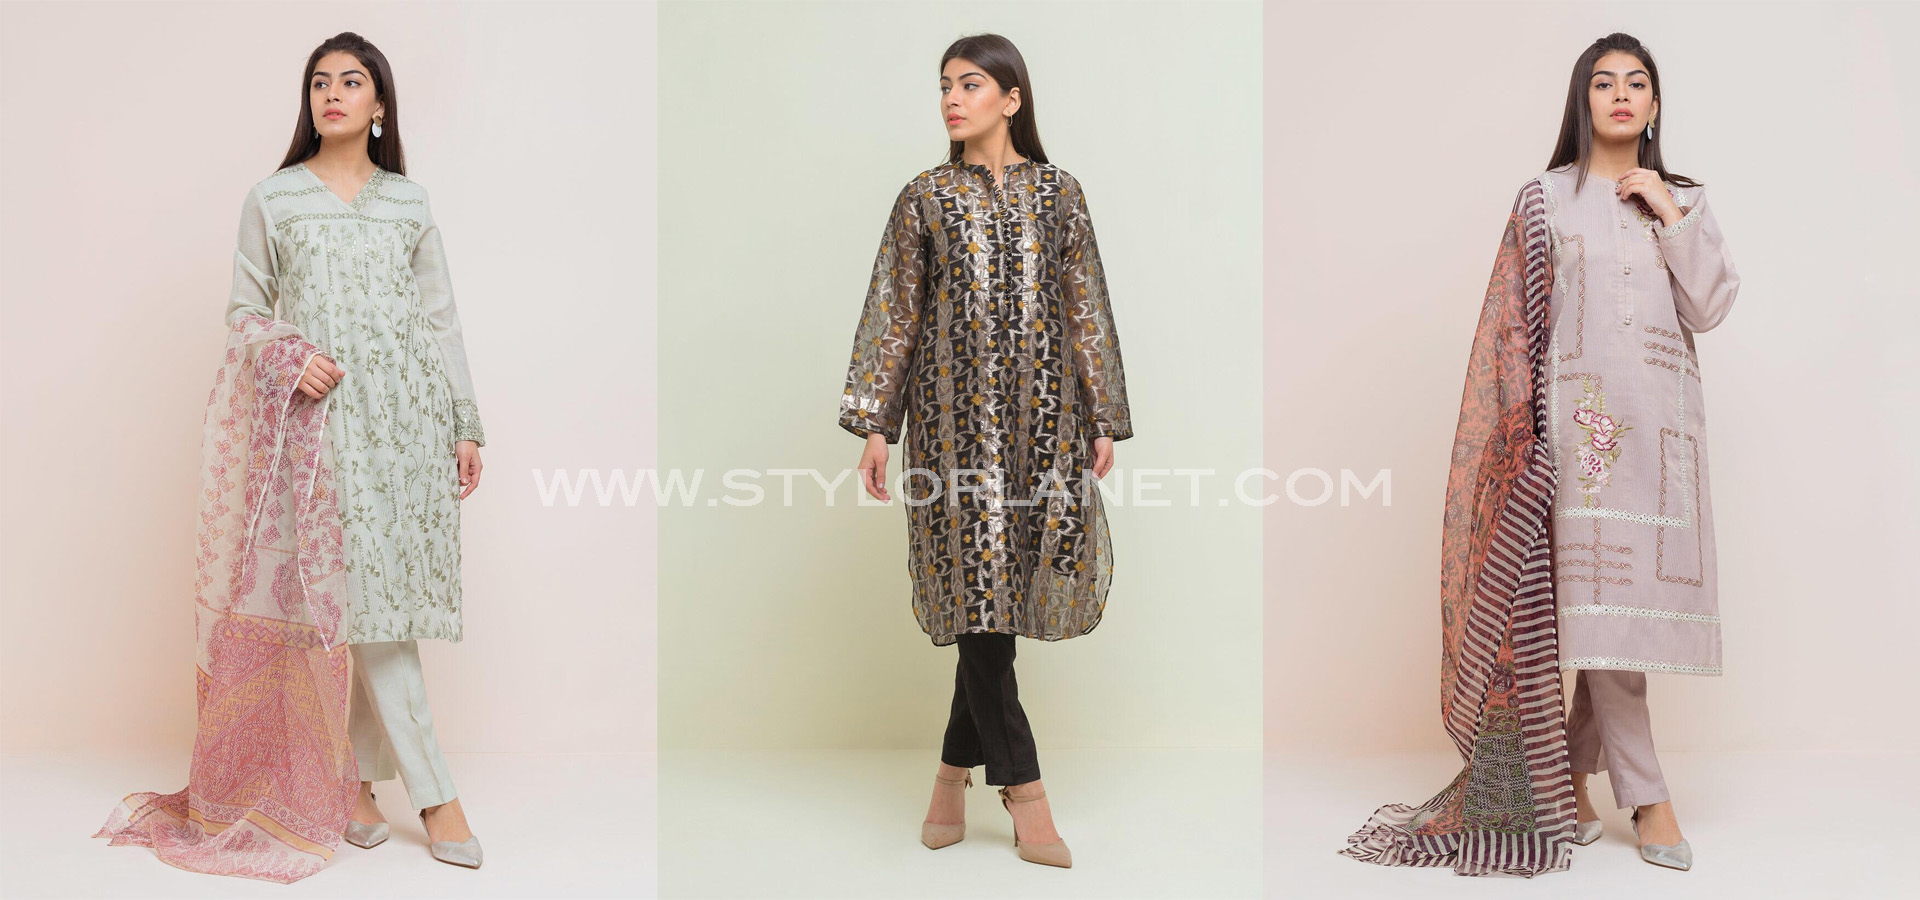 Latest Beechtree Sale 2020 Collection With Prices